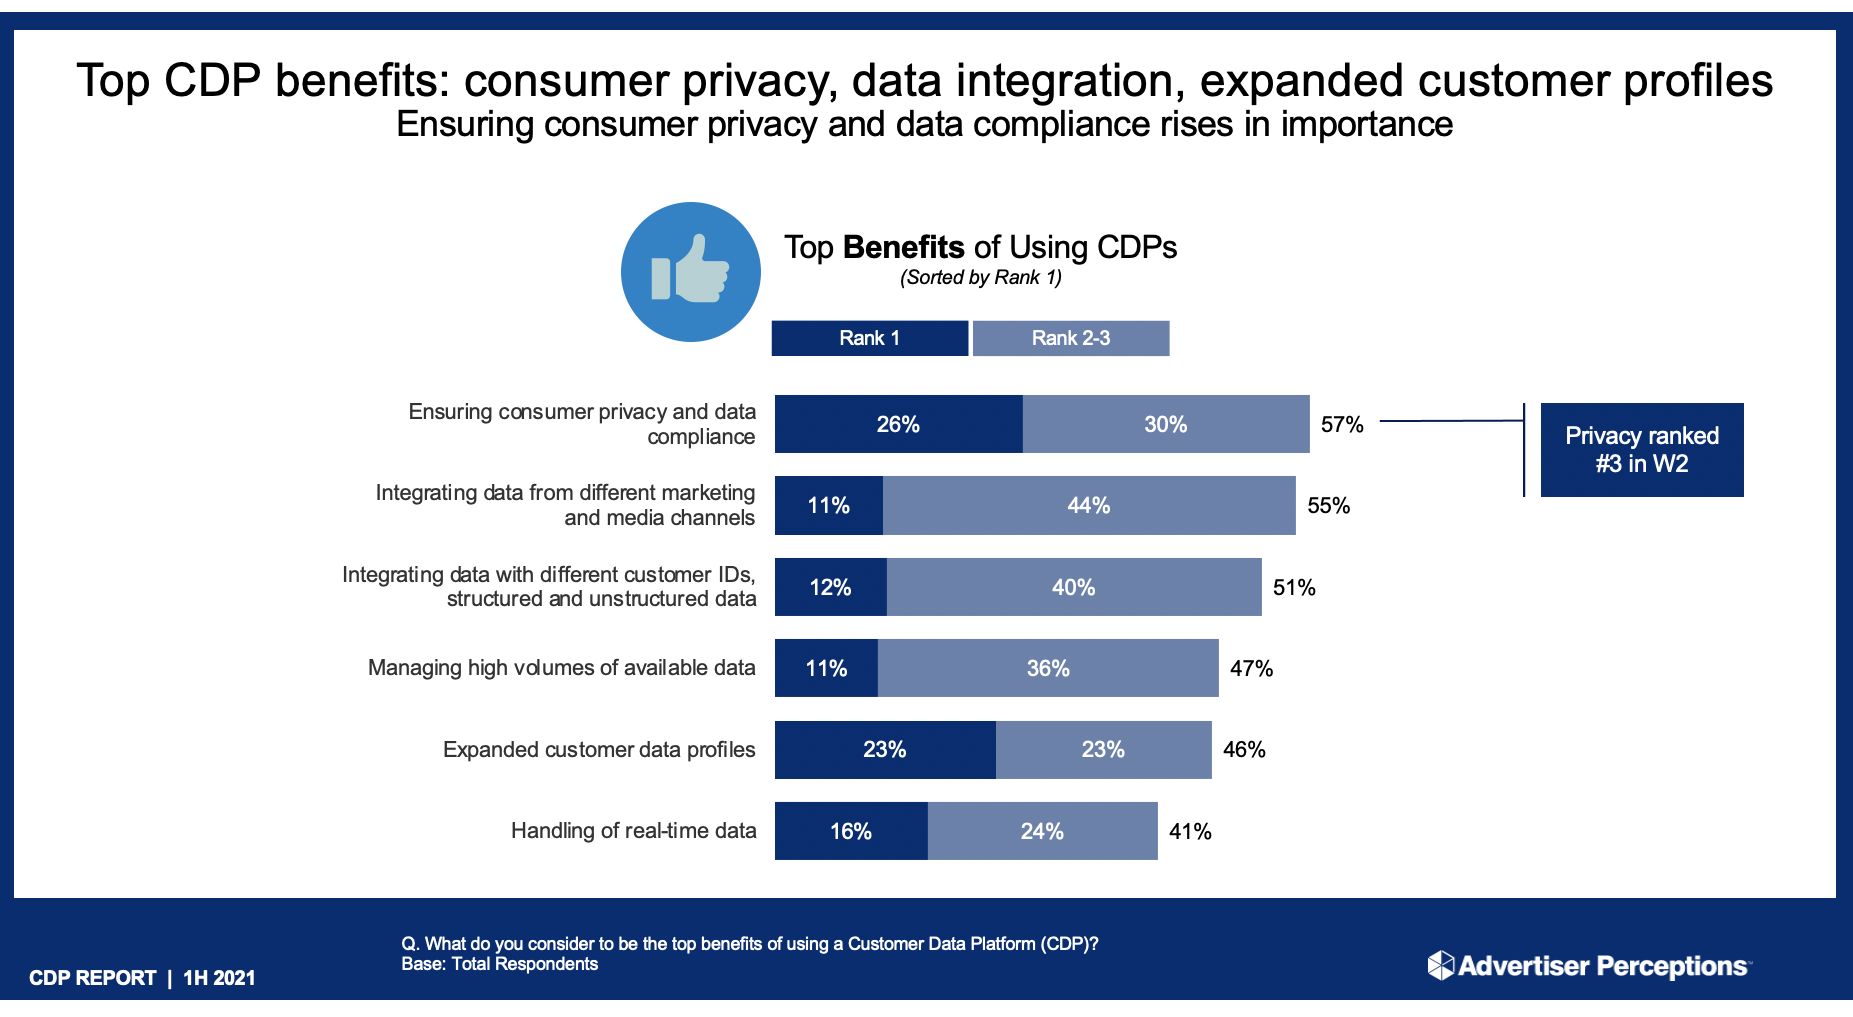 Privacy is the number one reason why marketers say they want to partner with a customer data platform, according to Advertiser Perceptions.